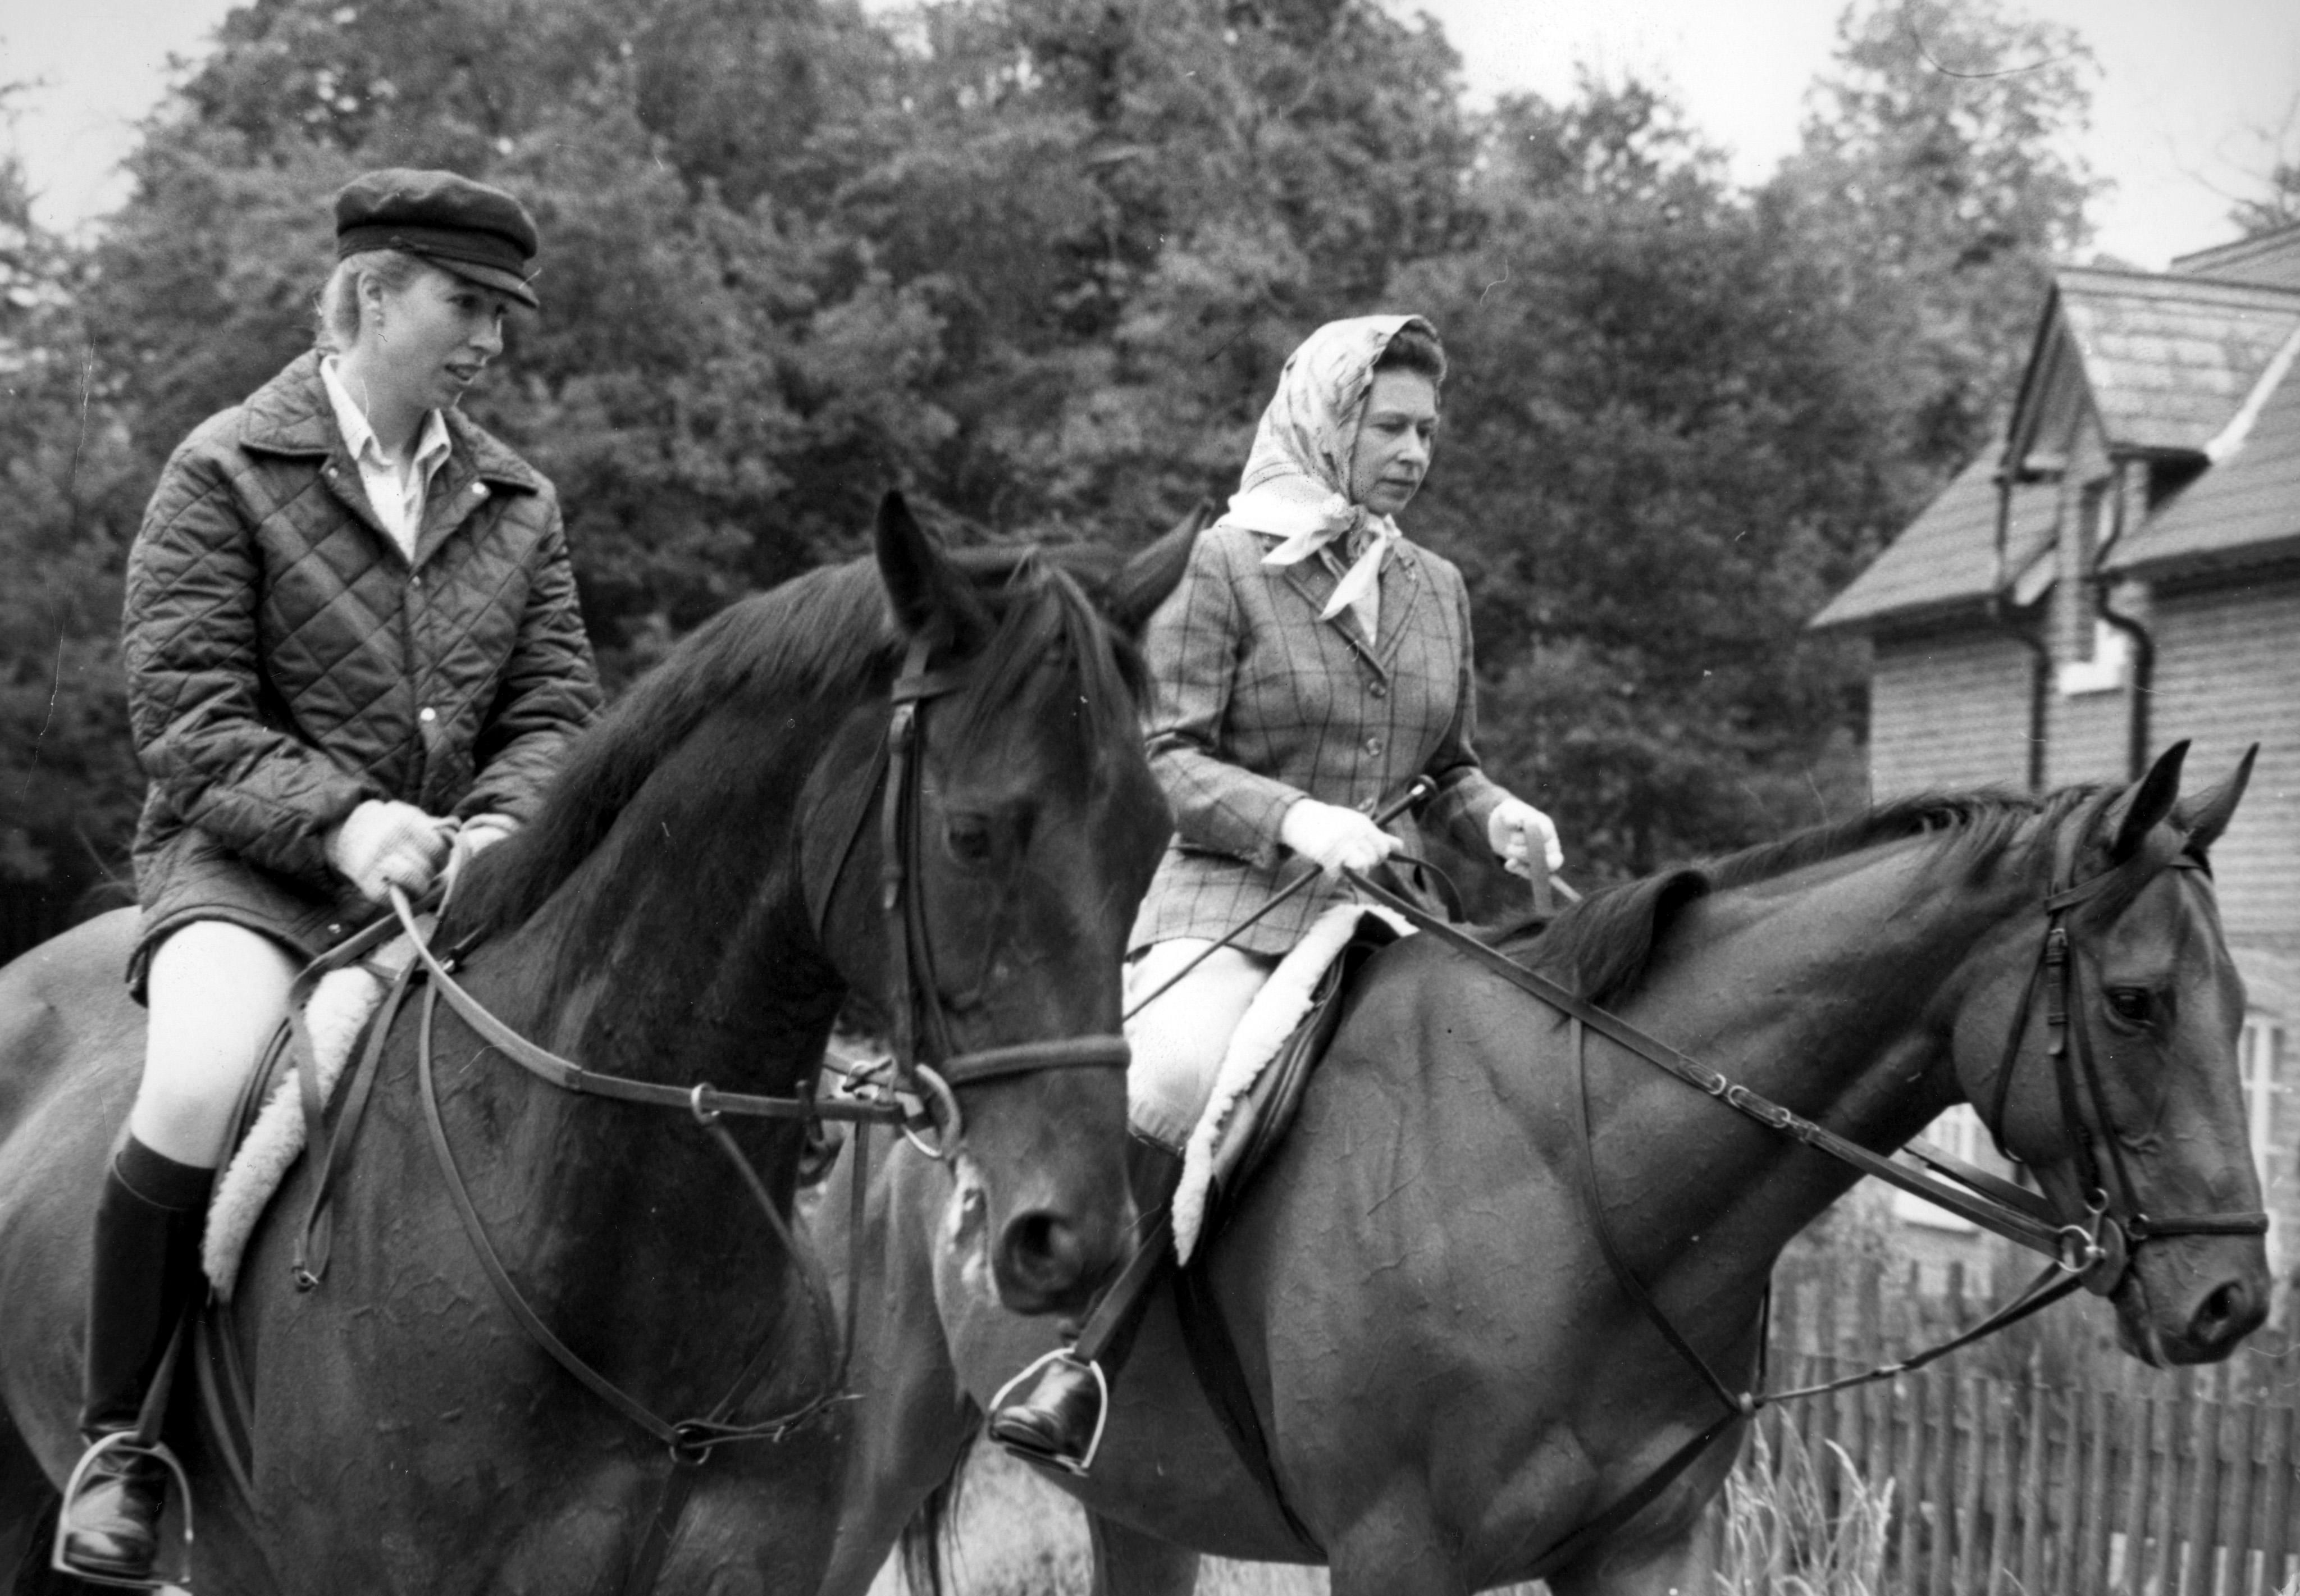 The Queen and Princess Anne riding at Ascot, where they were later among the Royal spectators on Gold Cup day. (Photo by PA Images via Getty Images)